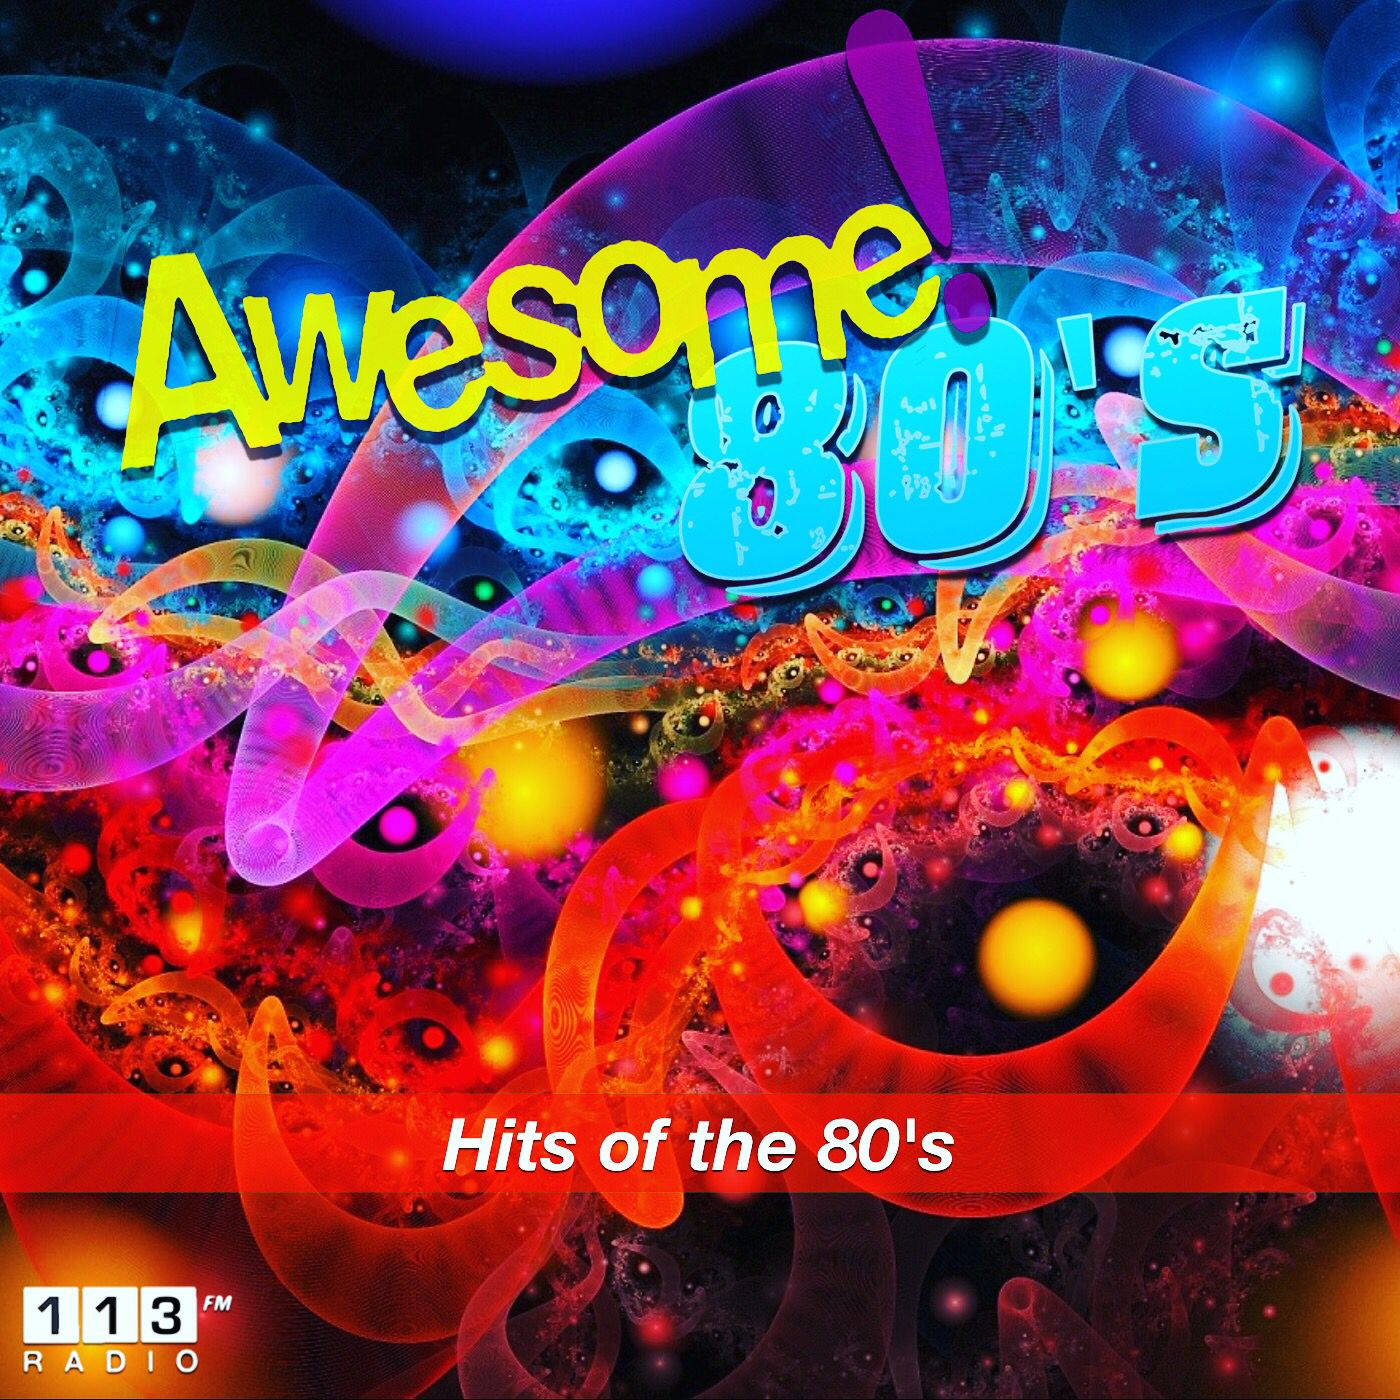 Your 1 Hit 80s Music Station Streamingradio Onlineradio 113fmradio 80smusic